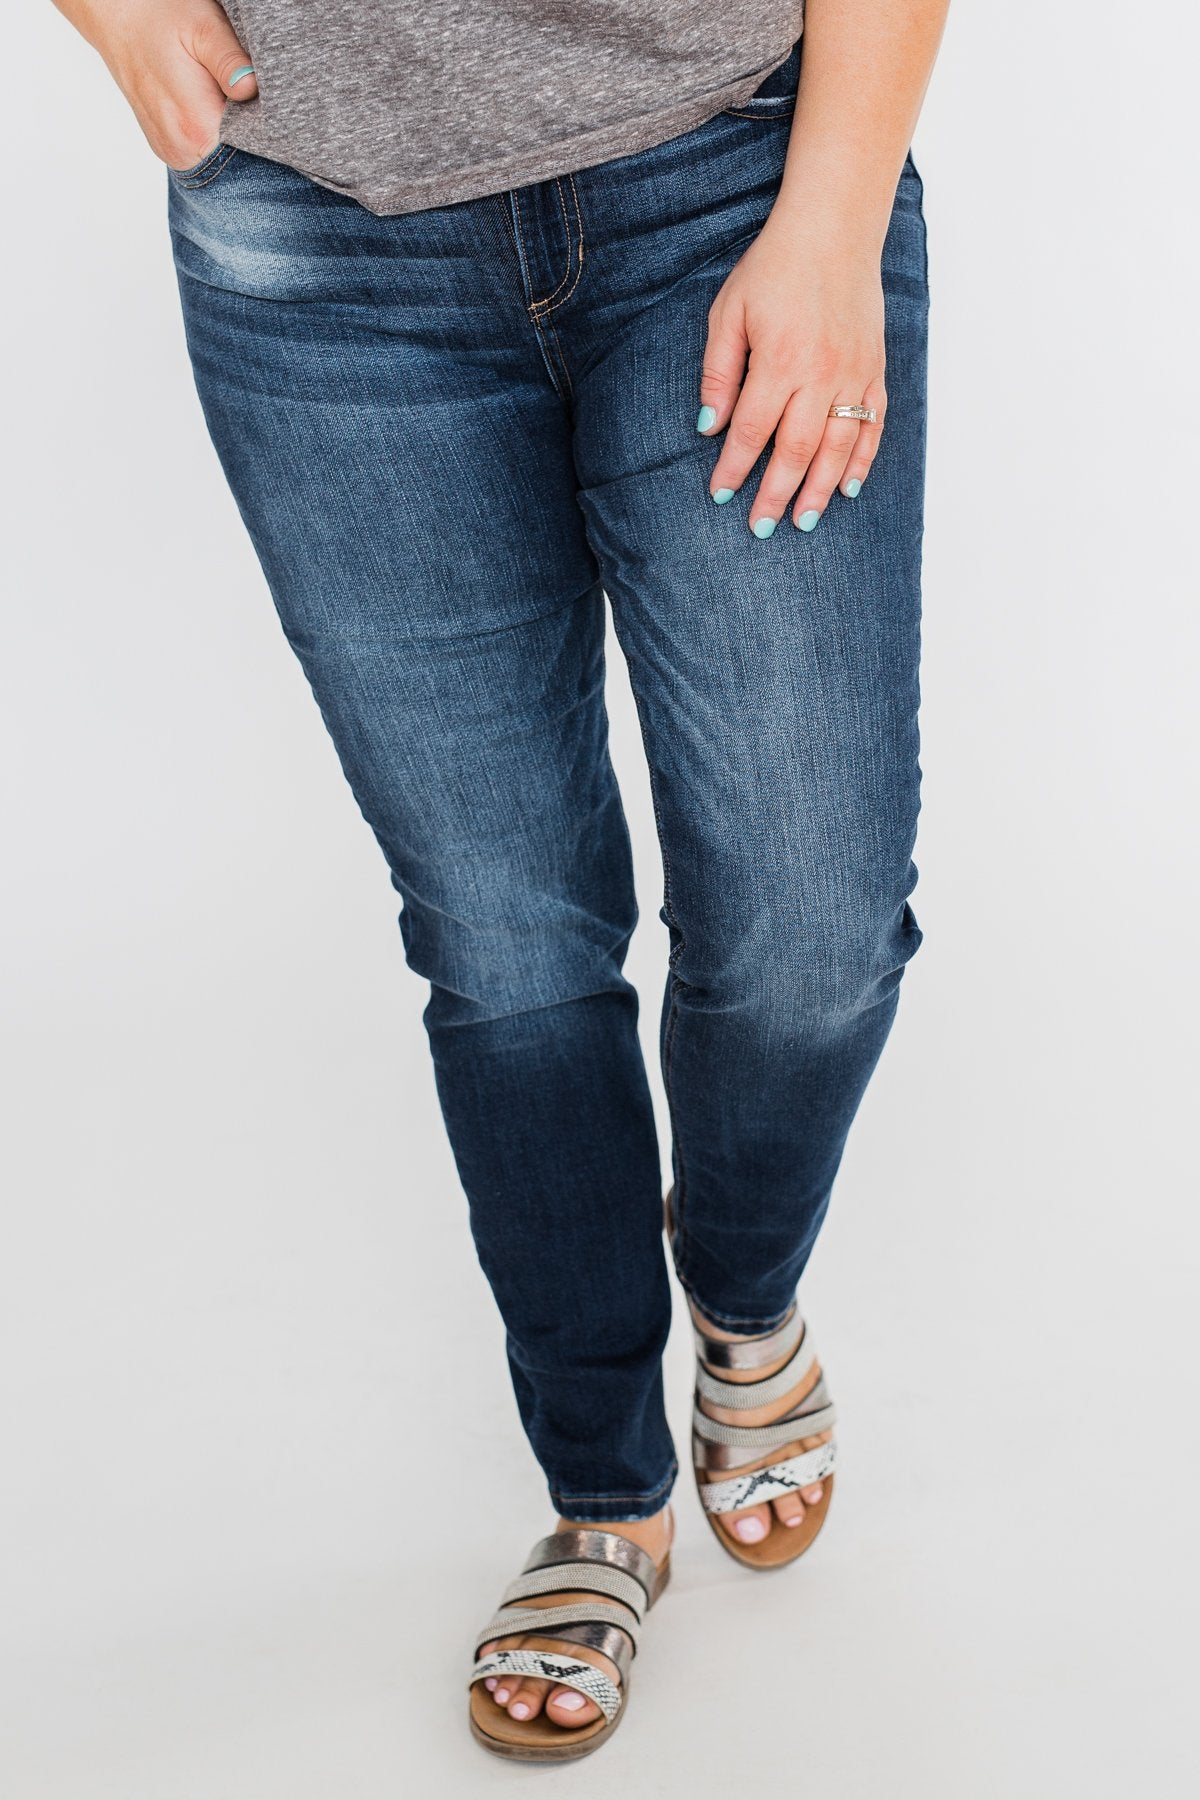 Sneak Peek Jeans- Layla Wash